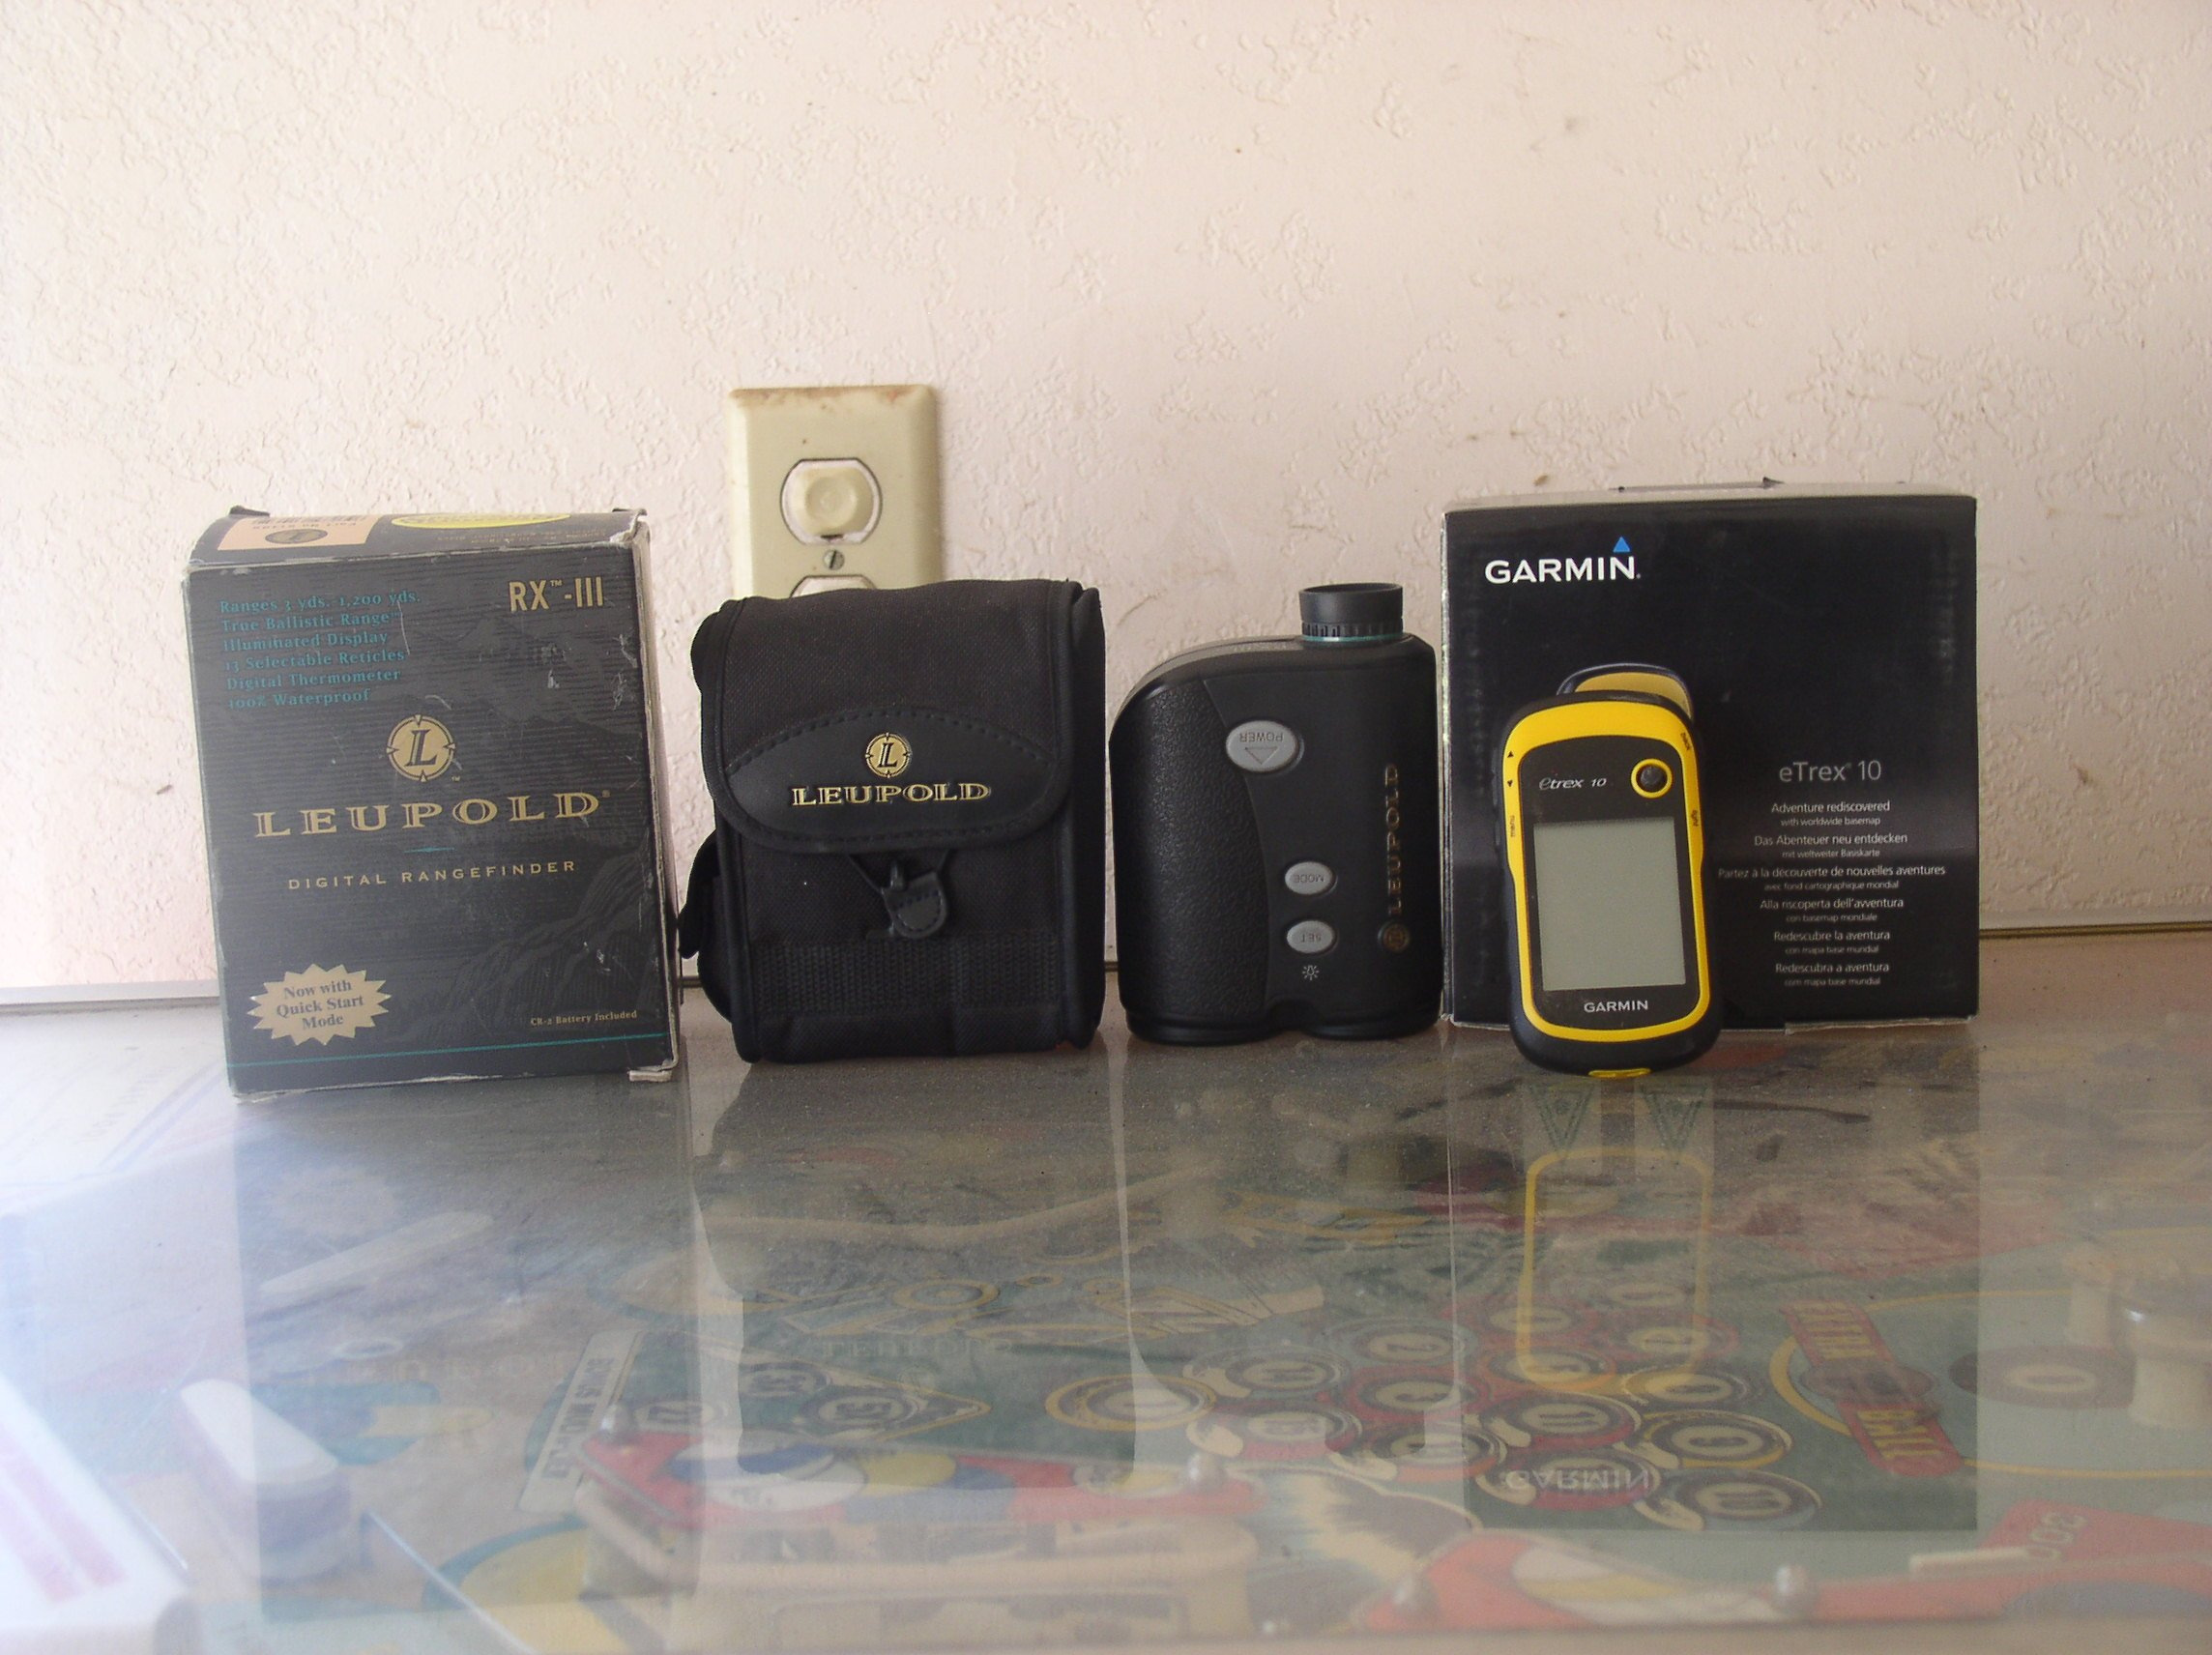 Range finder and GPS - Classified Ads - CouesWhitetail com